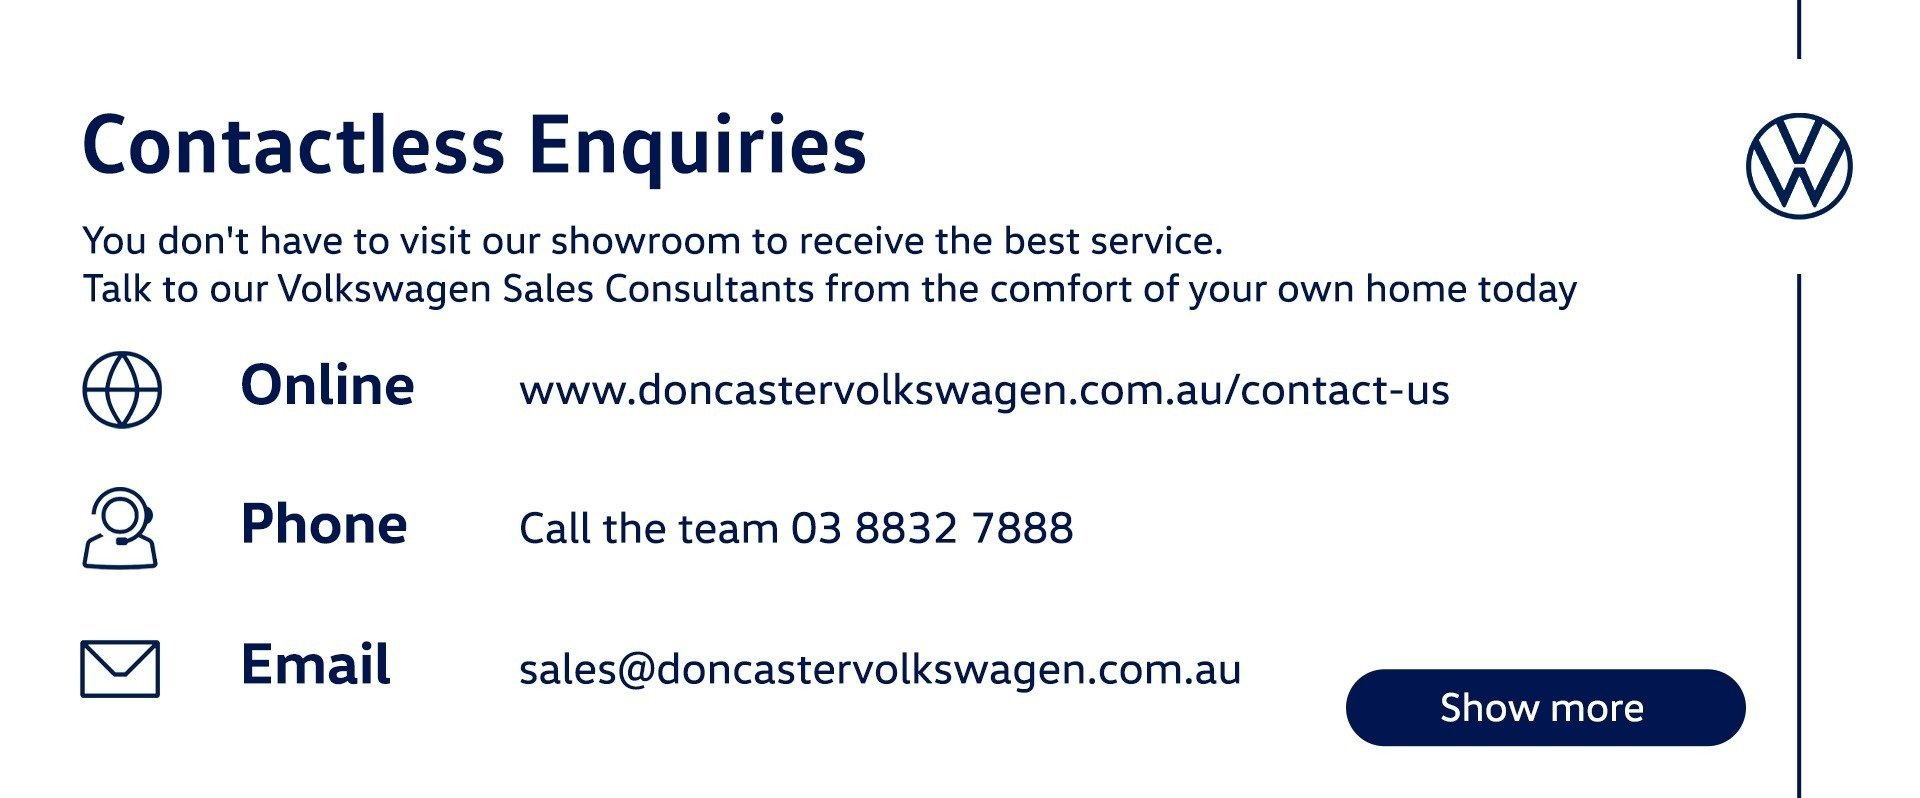 Contactless Enquiries